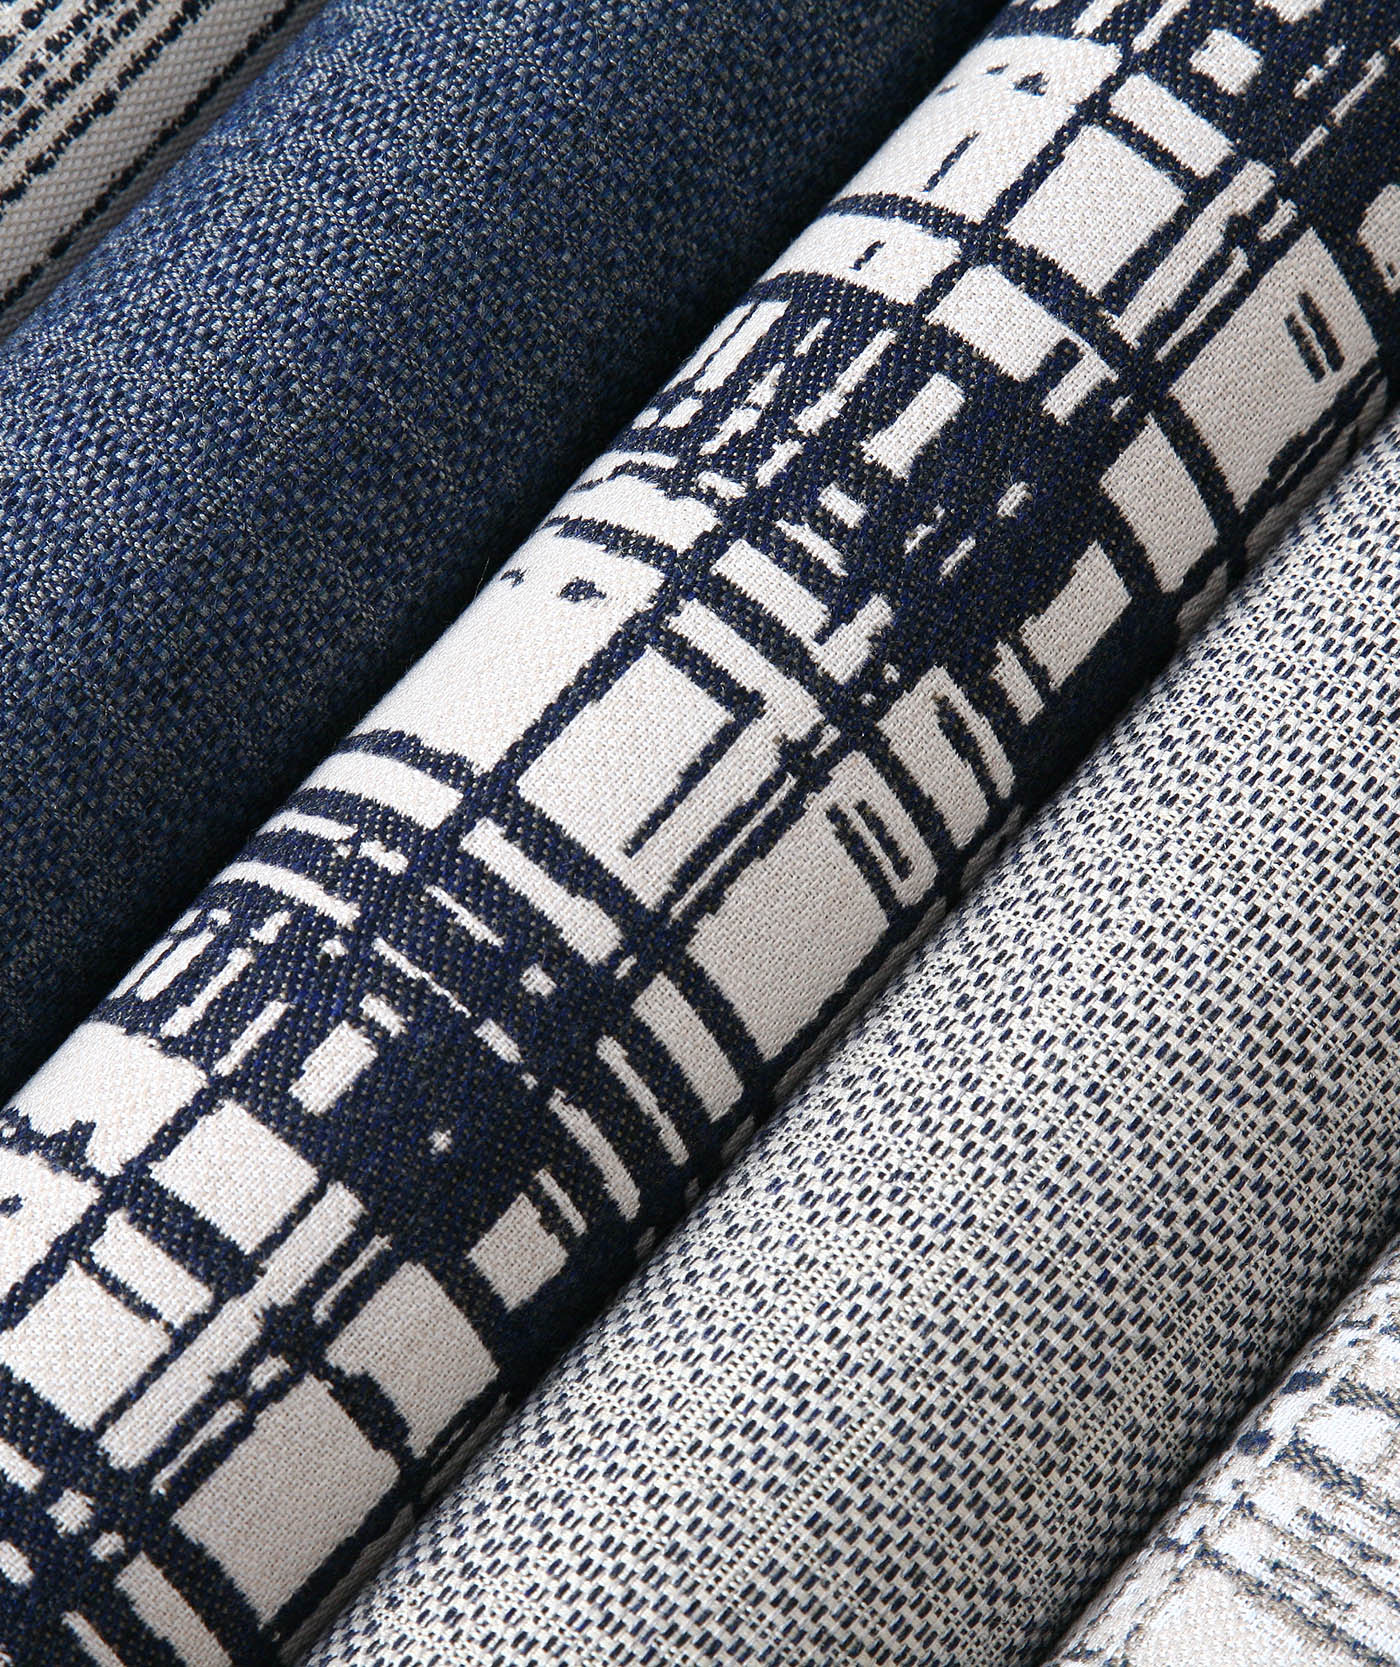 Select fabrics from the Richard Frinier Network Collection